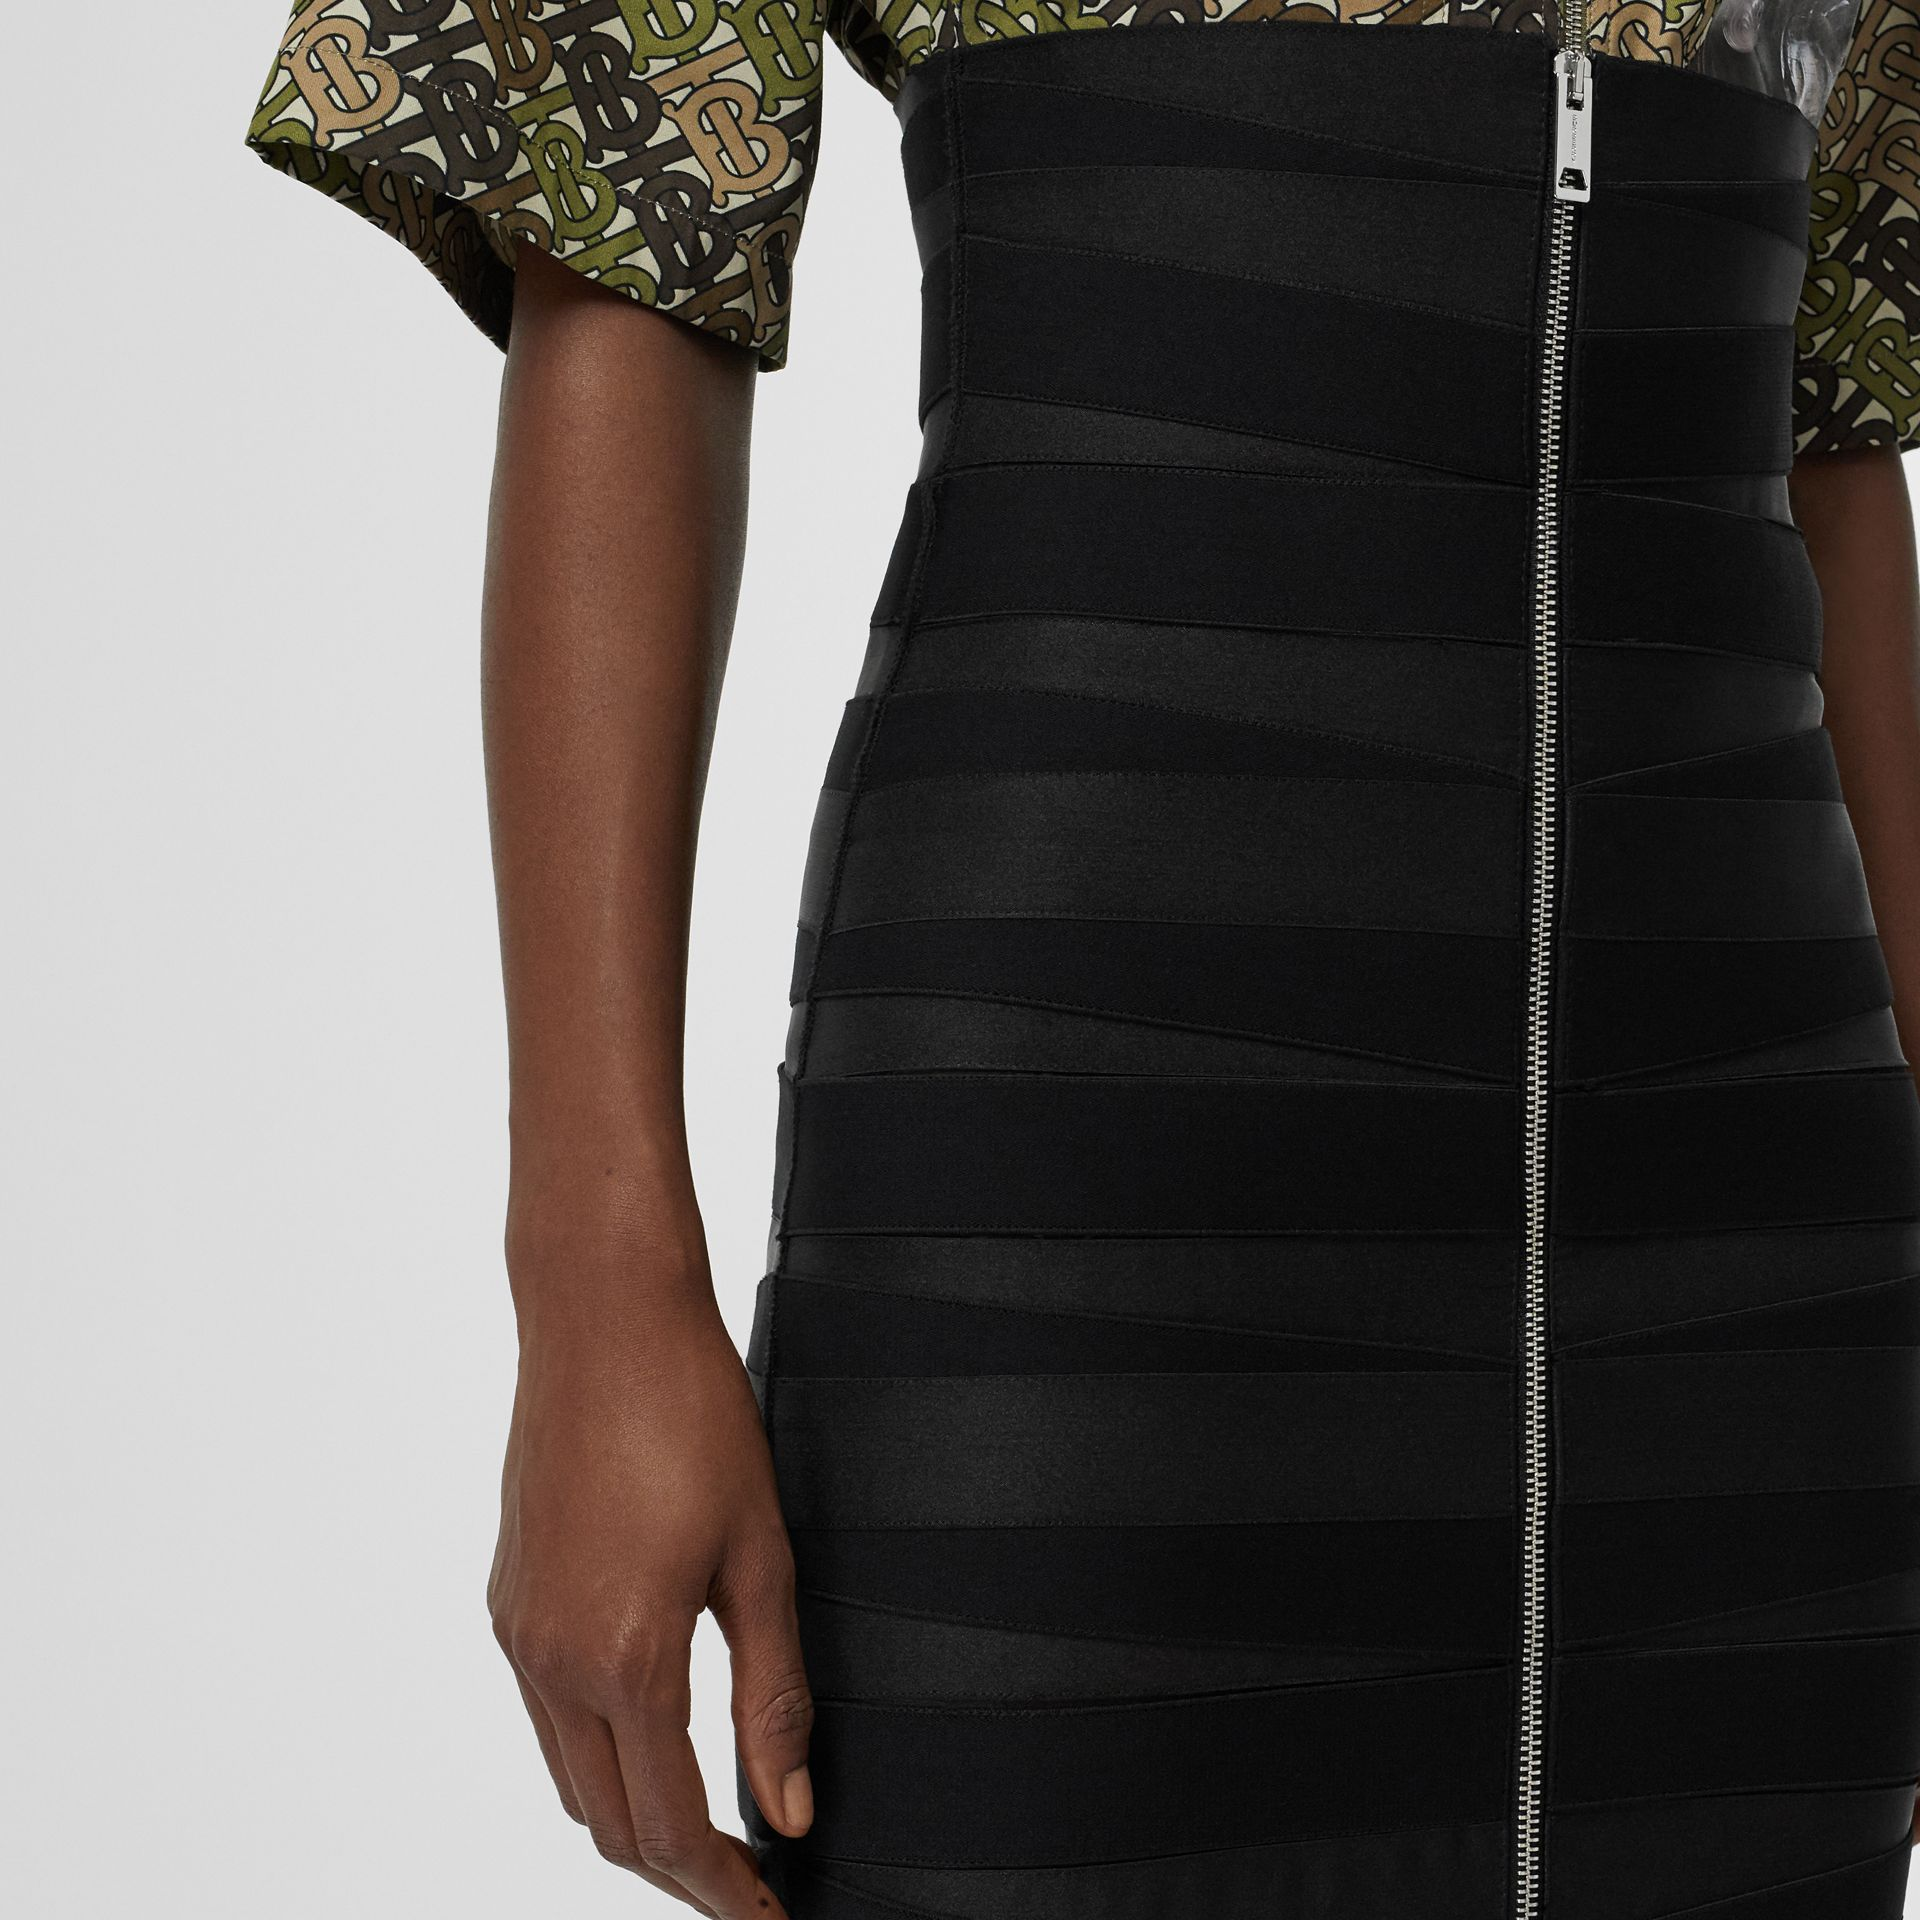 Stretch Zip-front Bandage Skirt in Black - Women | Burberry - gallery image 1